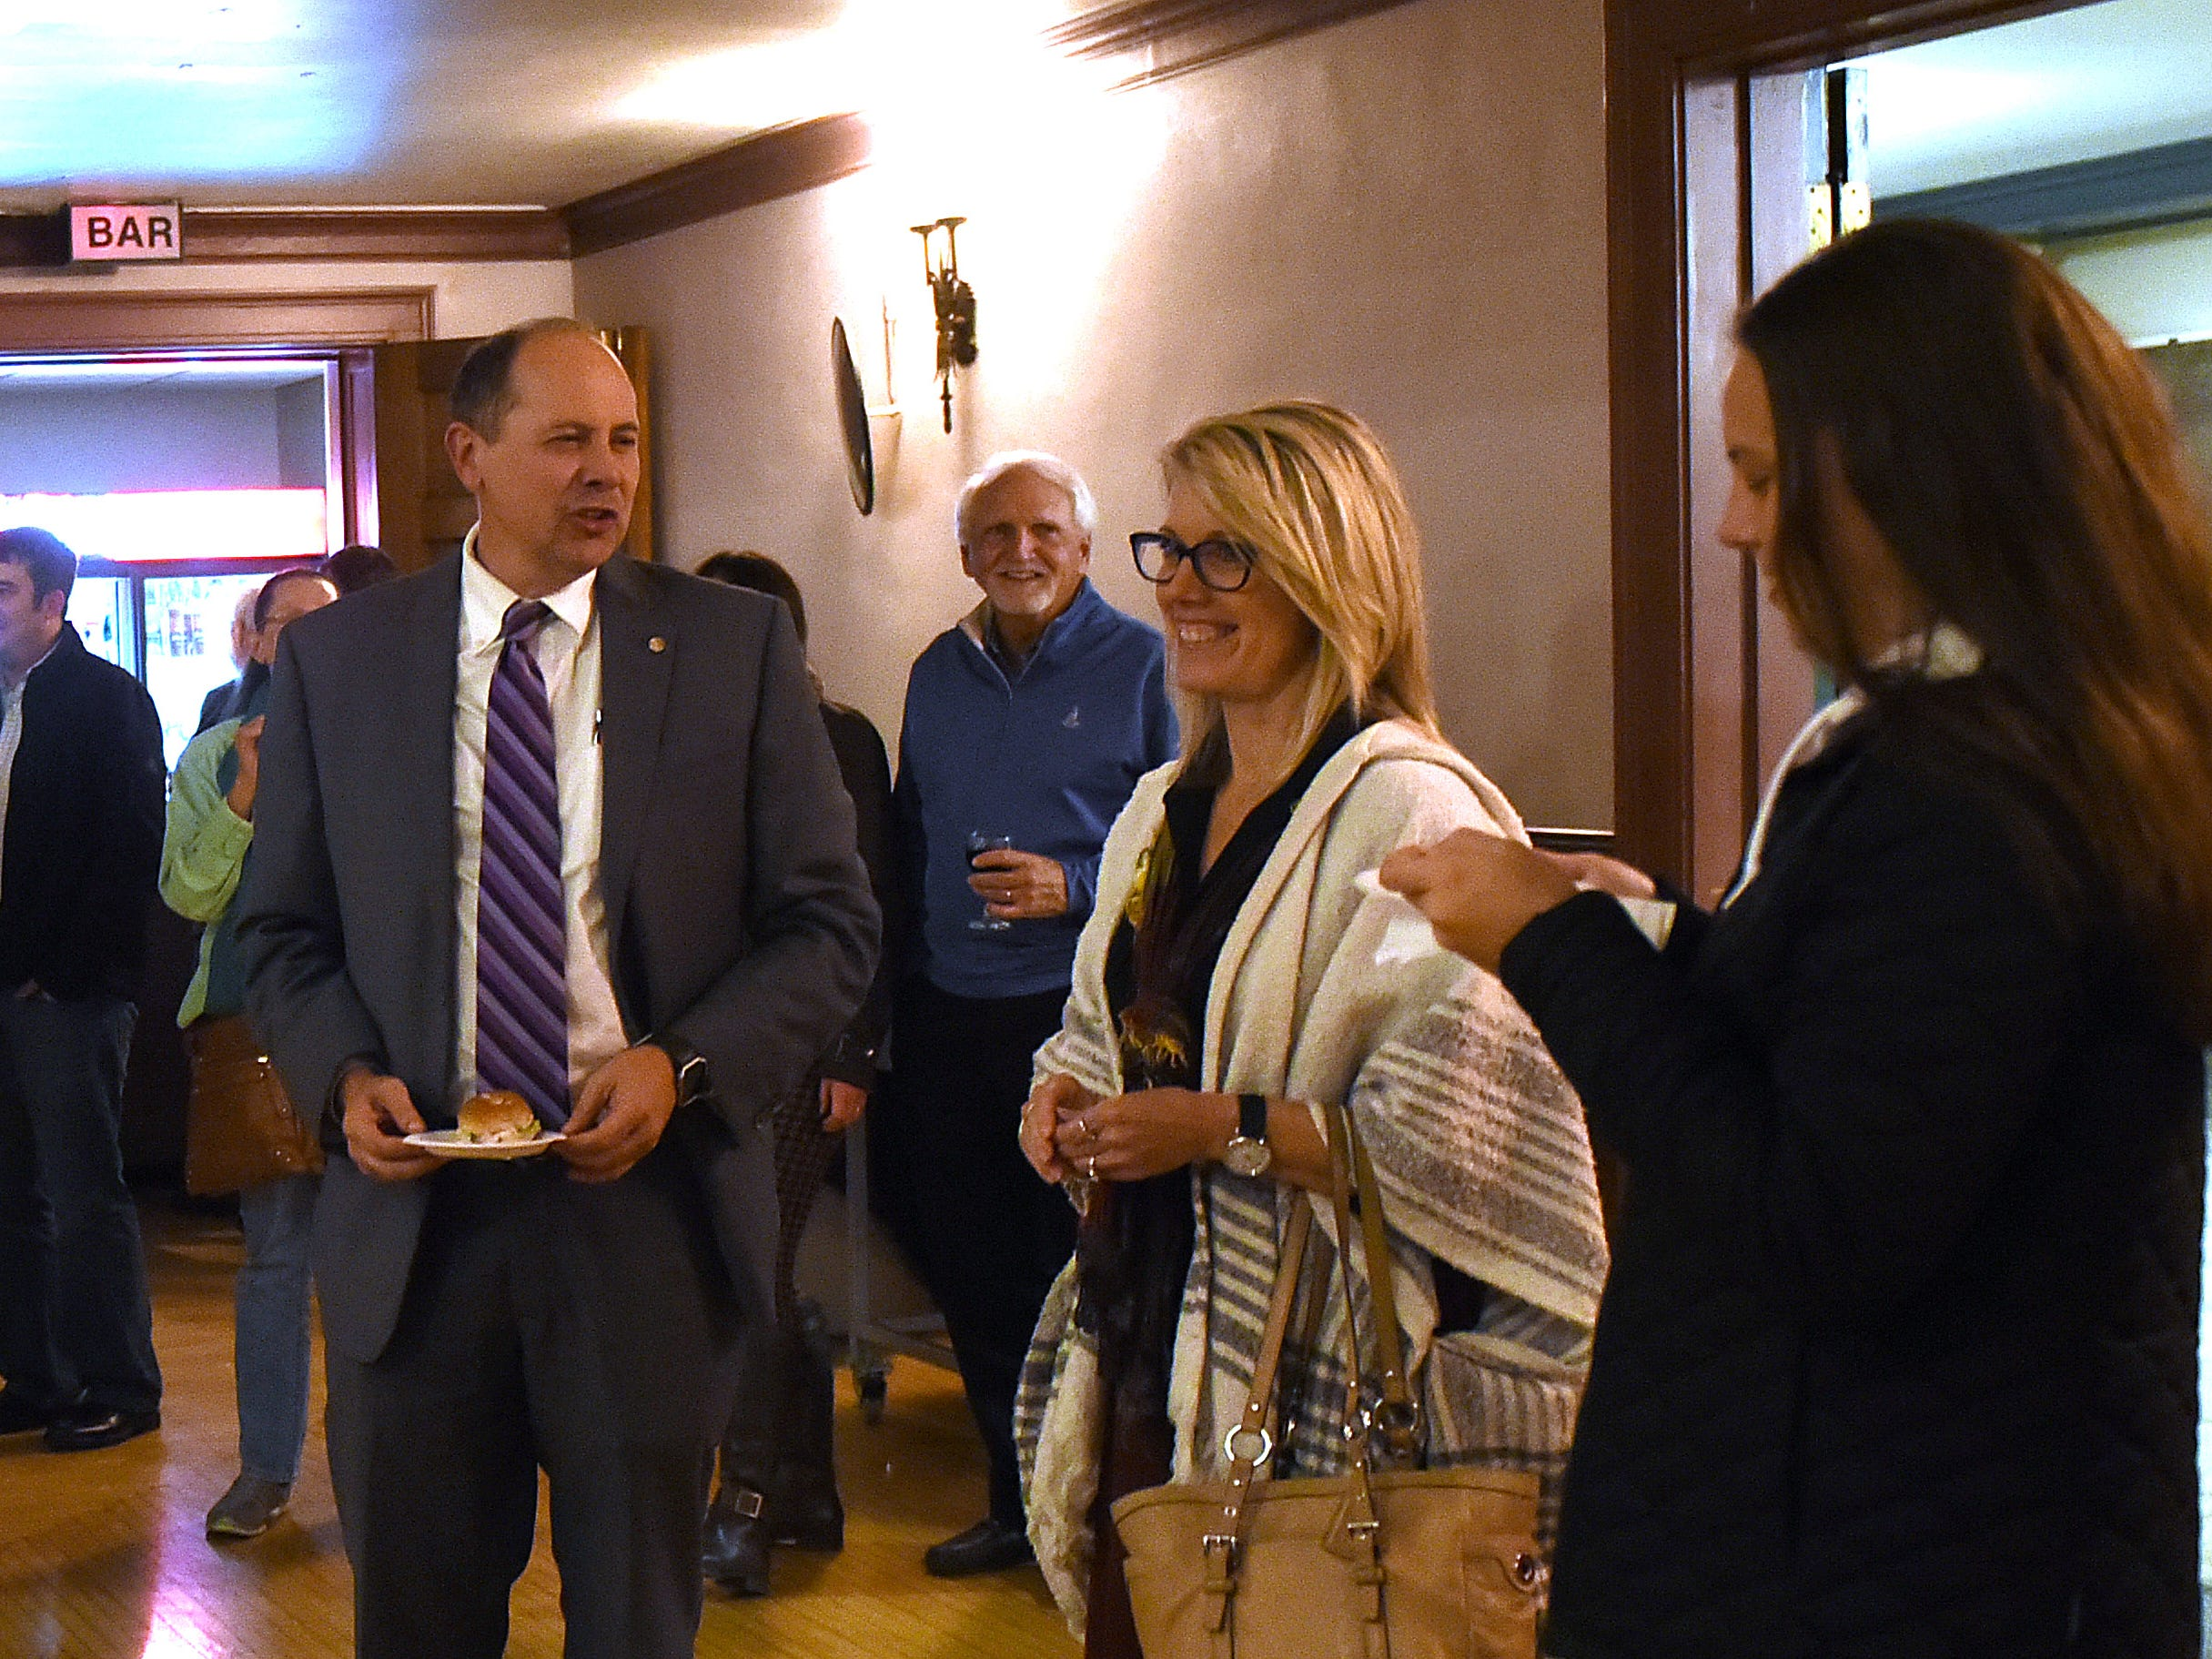 Ohio Sen. Jay Hottinger (left) and daughter, Jayme (right), join local republicans in singing happy birthday to Cheri Hottinger who turned 50 on election night. Jay won his 12th election in his political career on Tuesday, Nov. 6, 2018.